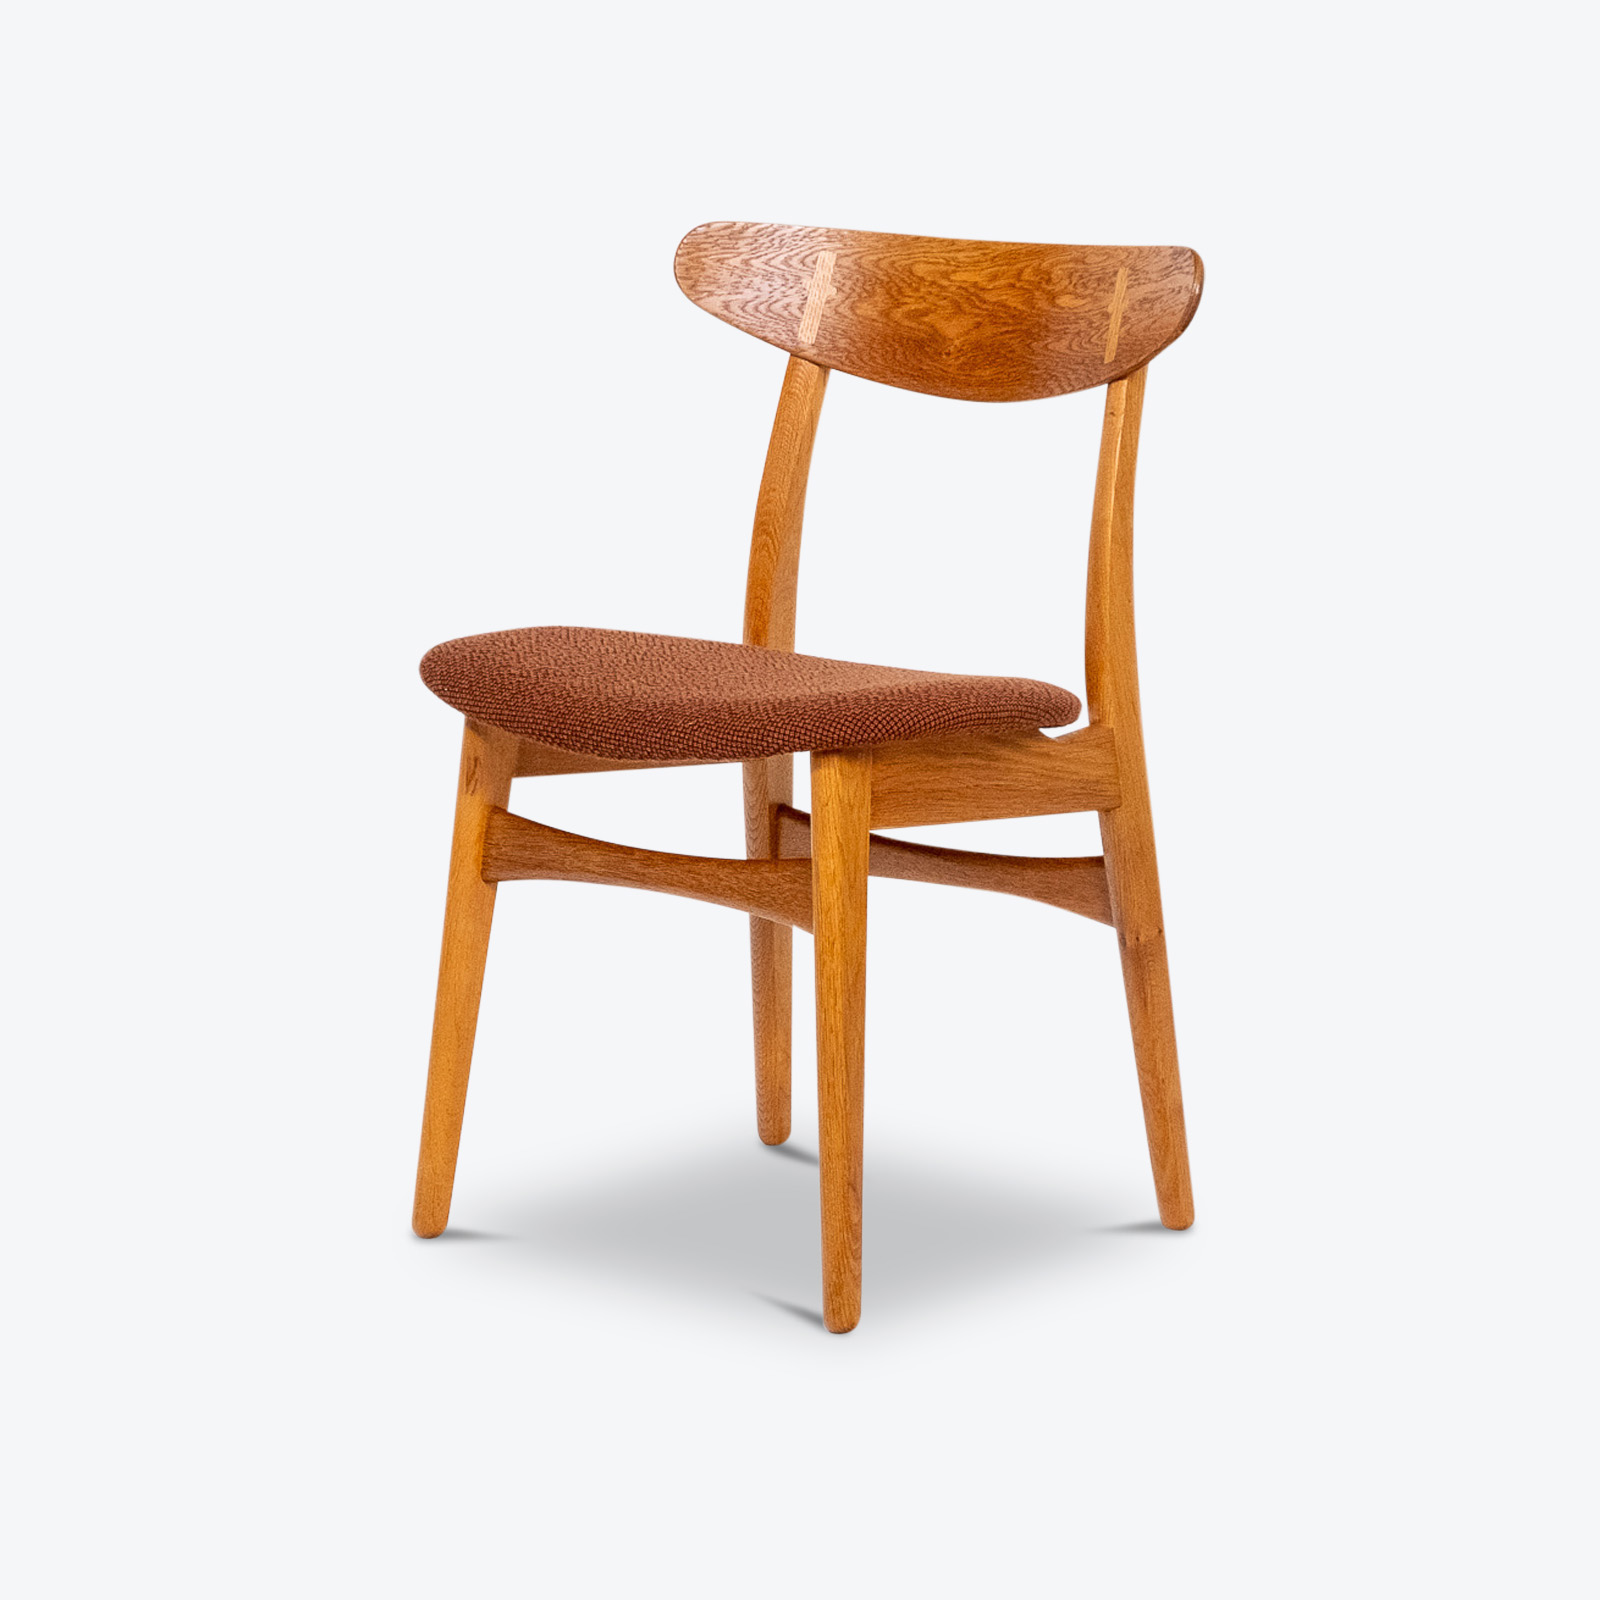 Set Of 4 Ch 30 Dining Chairs By Hans Wegner For Carl Hansen And Son In Oak And Kvadart Upholstery, 1950s, Denmark 08 Copy